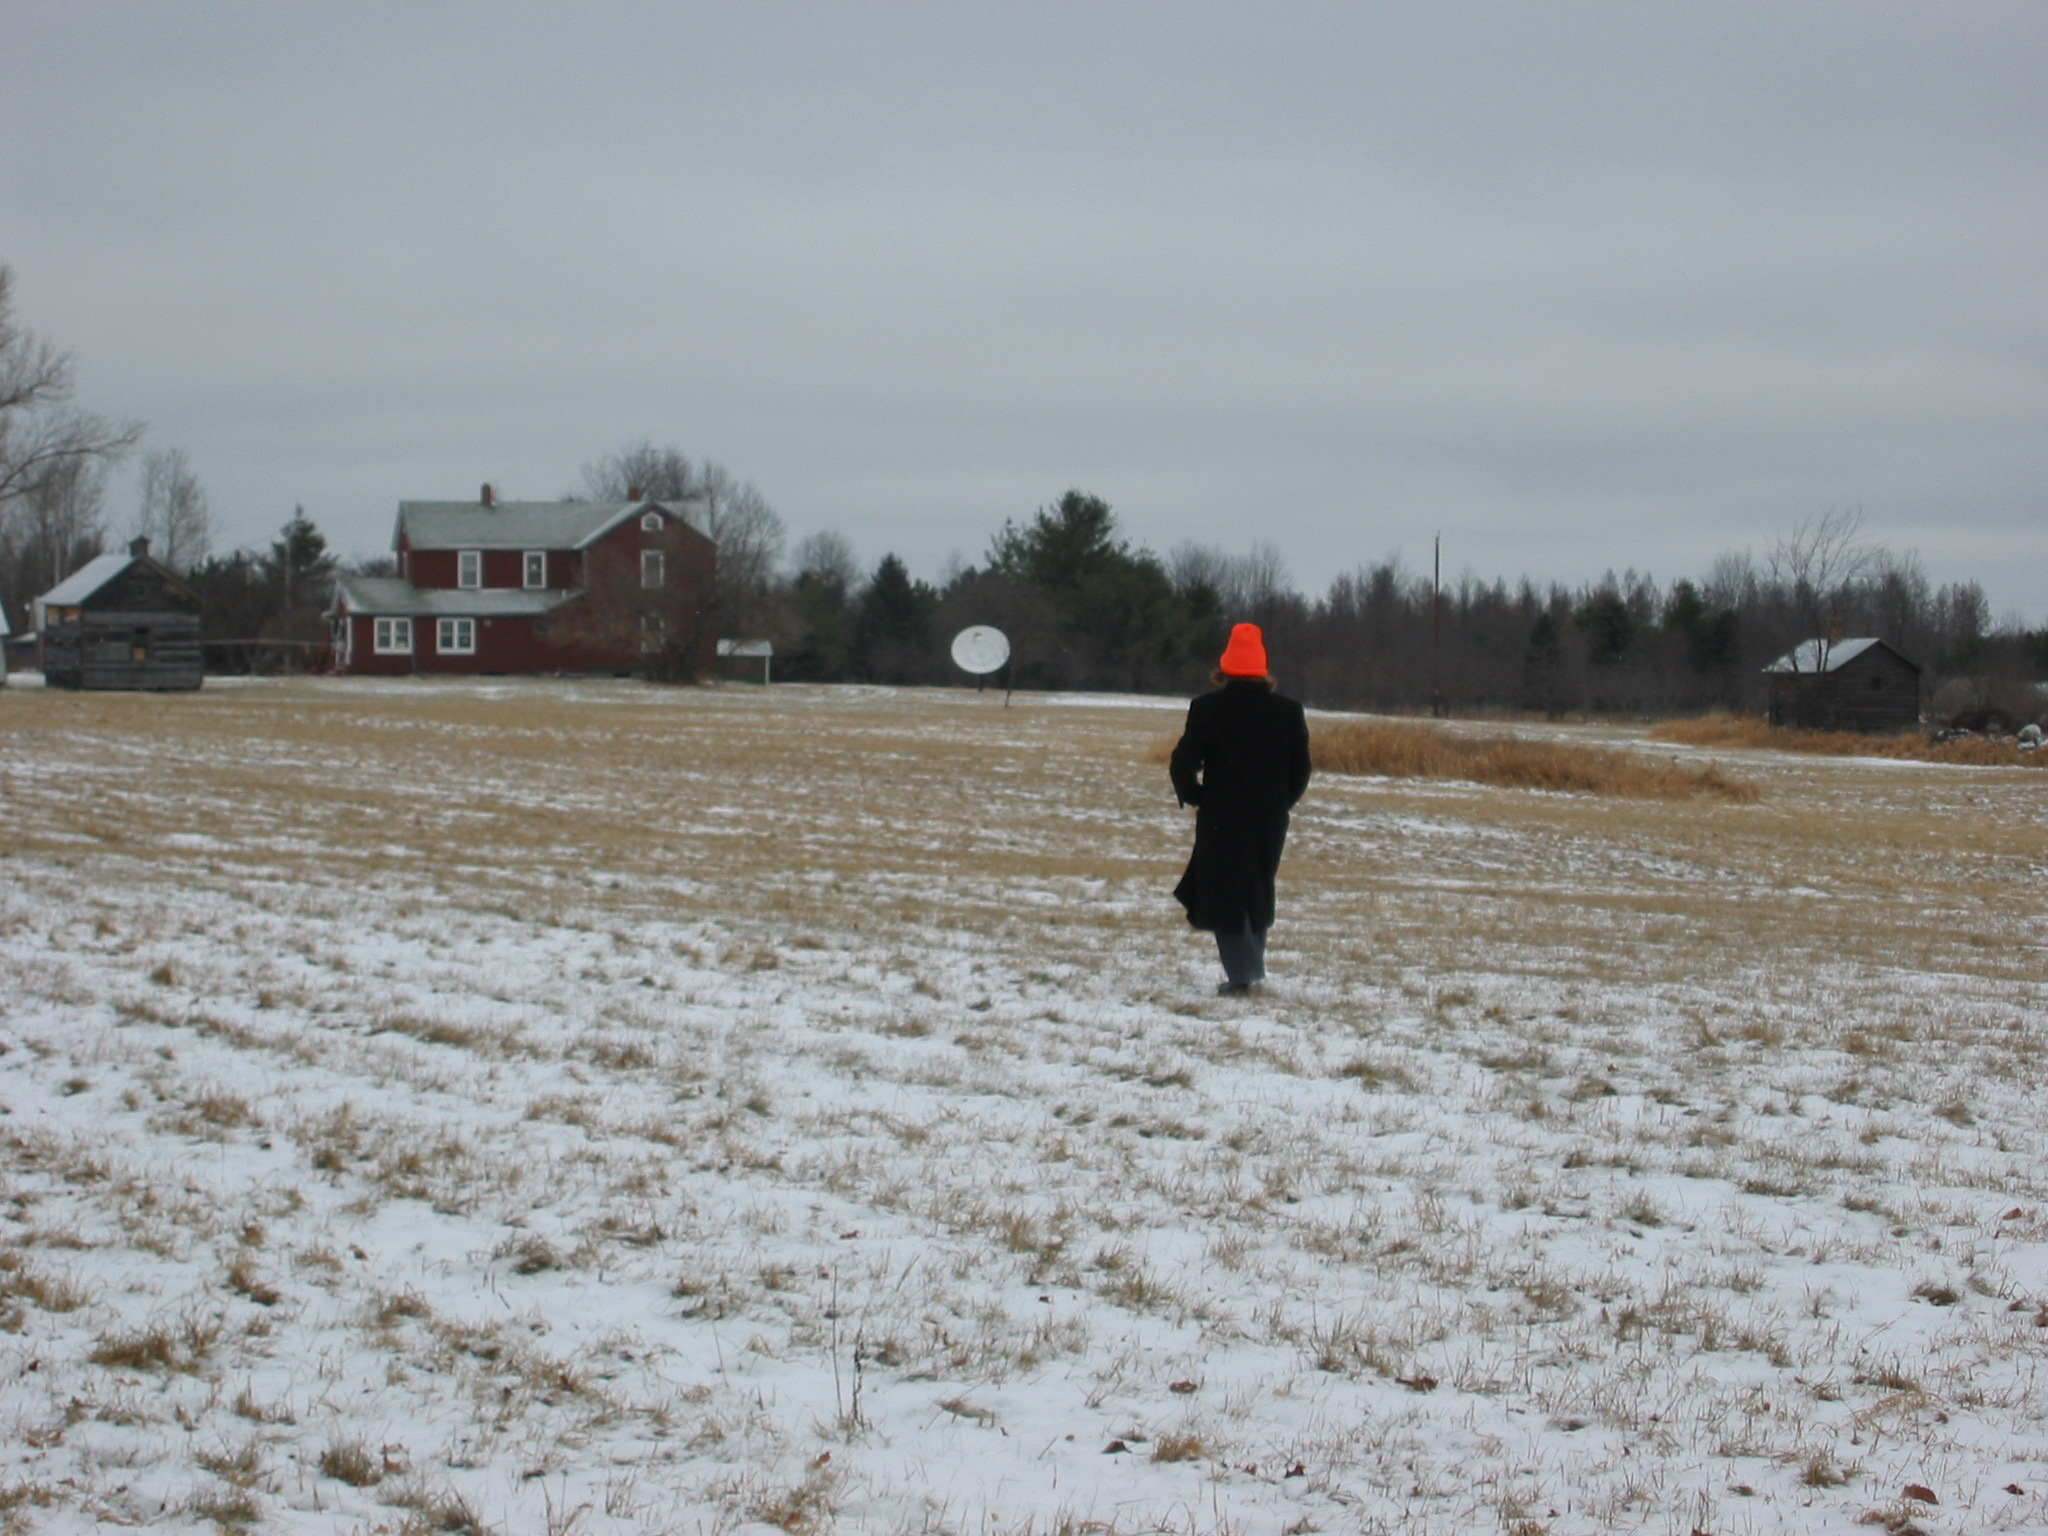 December 2002, Farmhouse